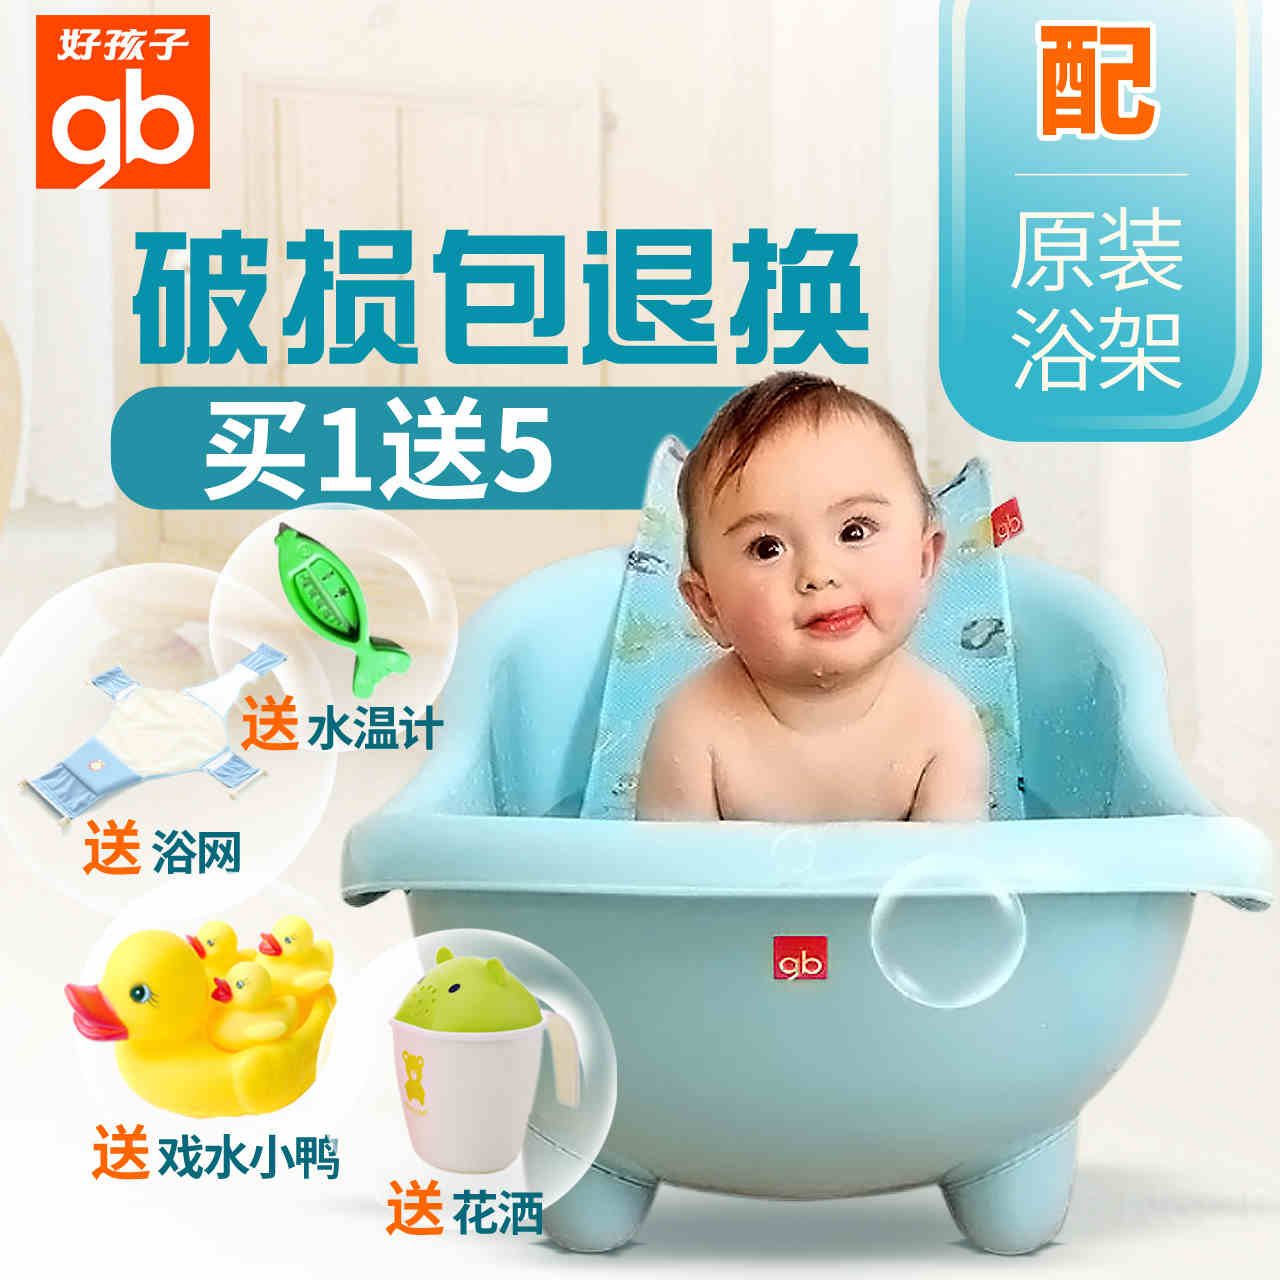 China Baby Boy Bath, China Baby Boy Bath Shopping Guide at Alibaba.com